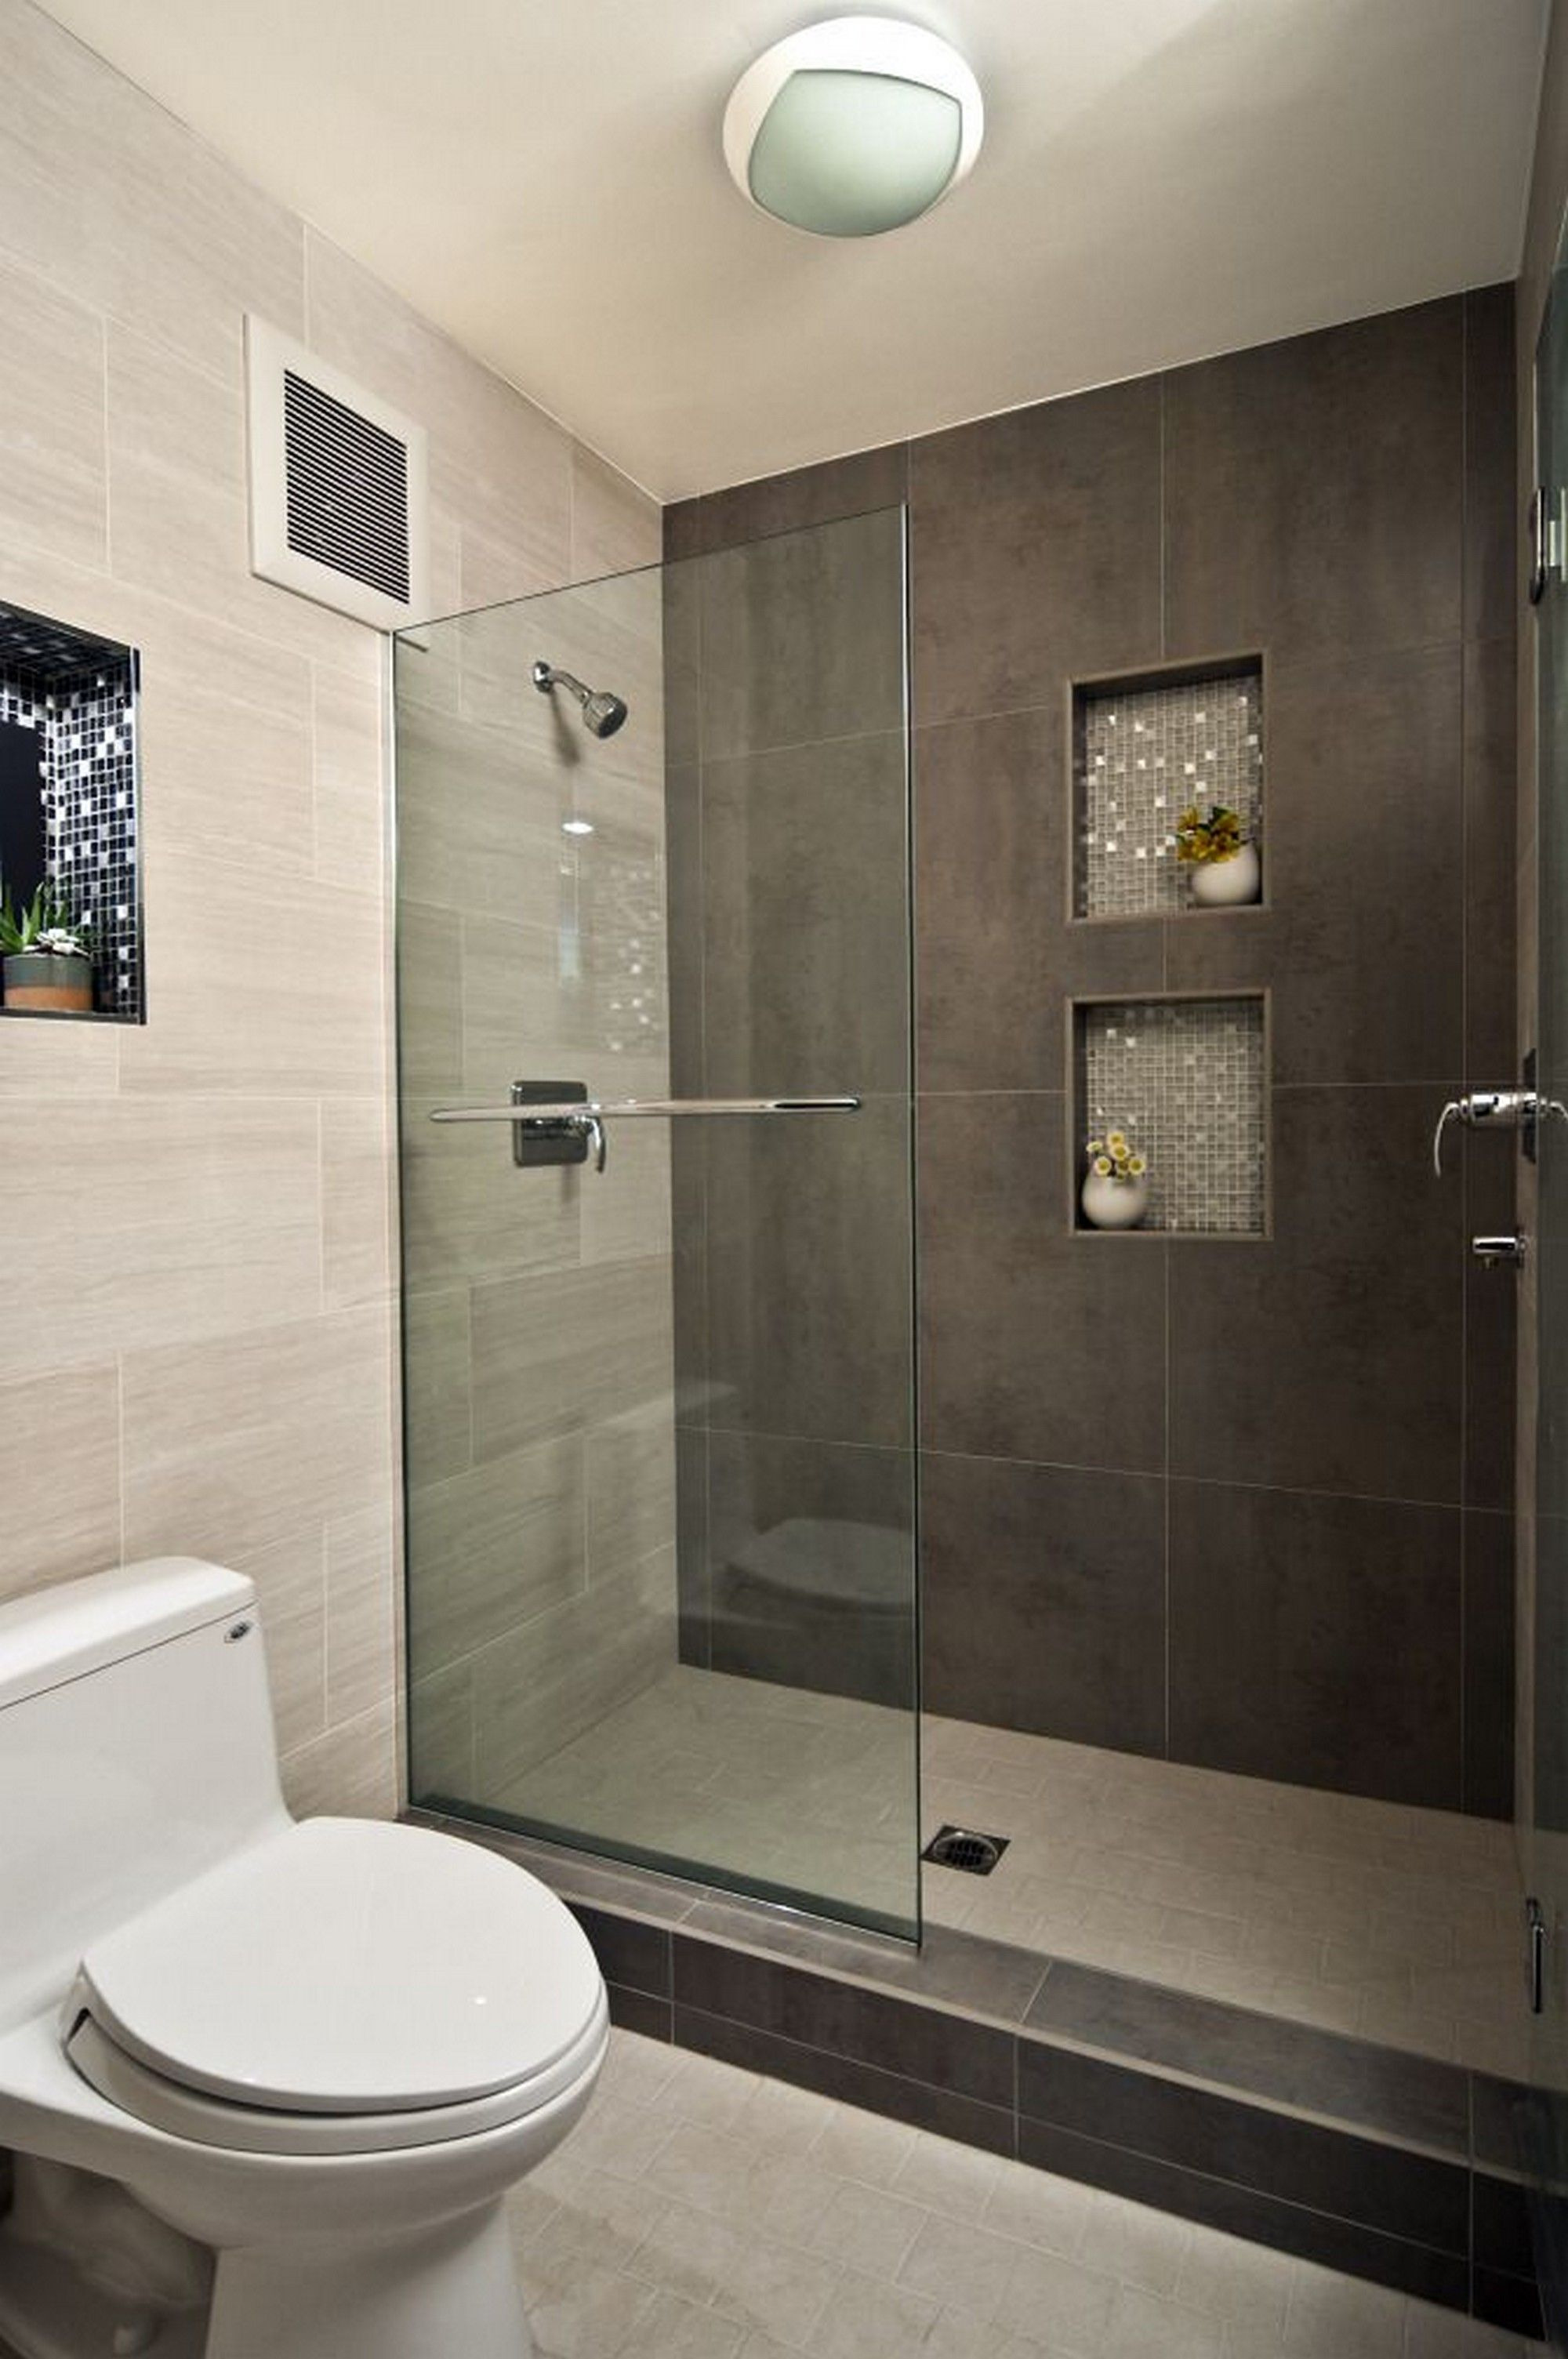 Pictures Of Bathrooms with Walk In Showers Luxury Modern Bathroom Design Ideas with Walk In Shower